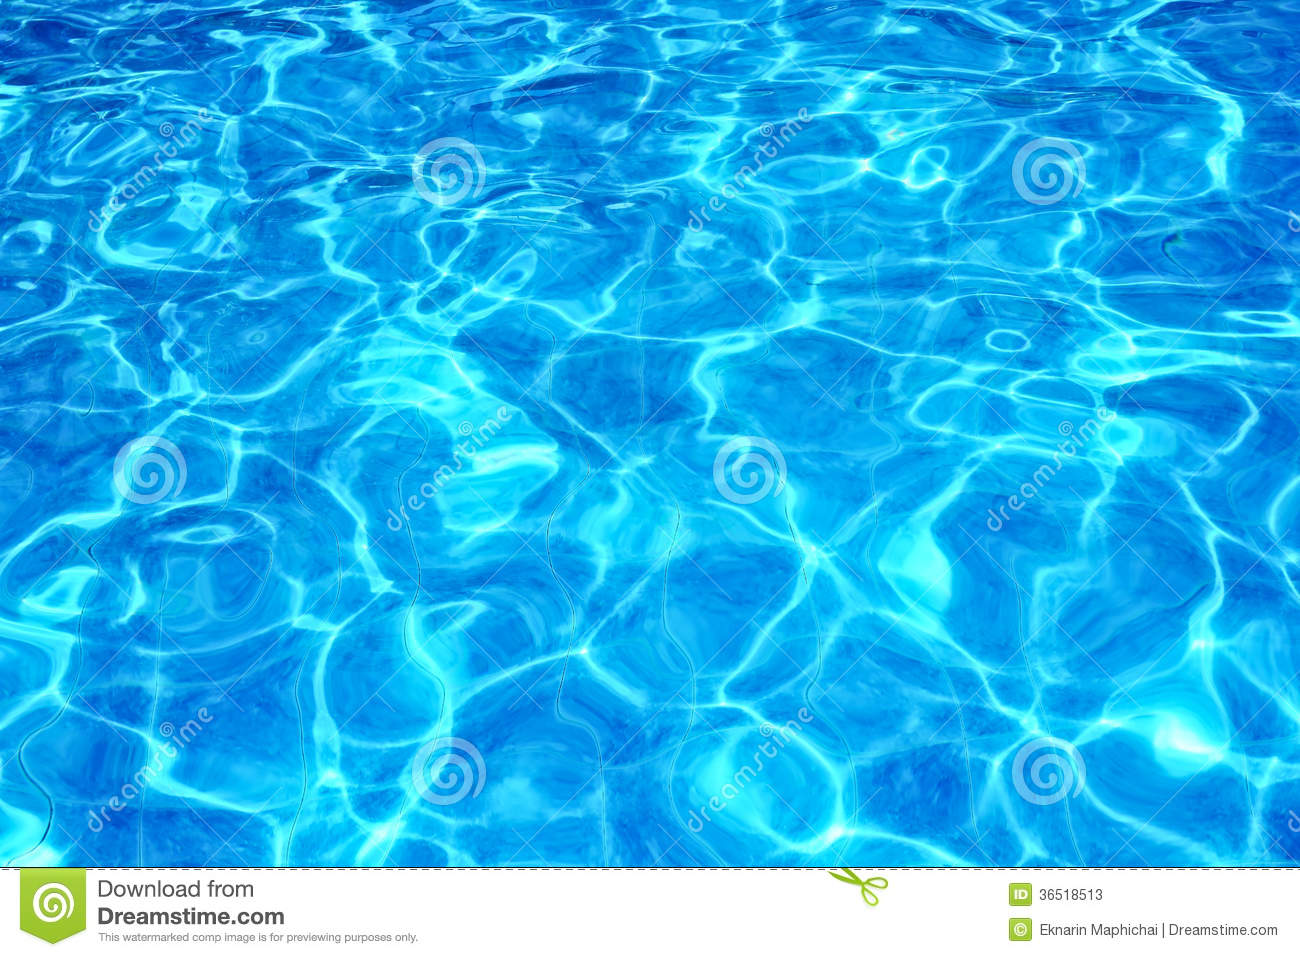 Blue abstract stock photos image 36518513 for Object pool design pattern